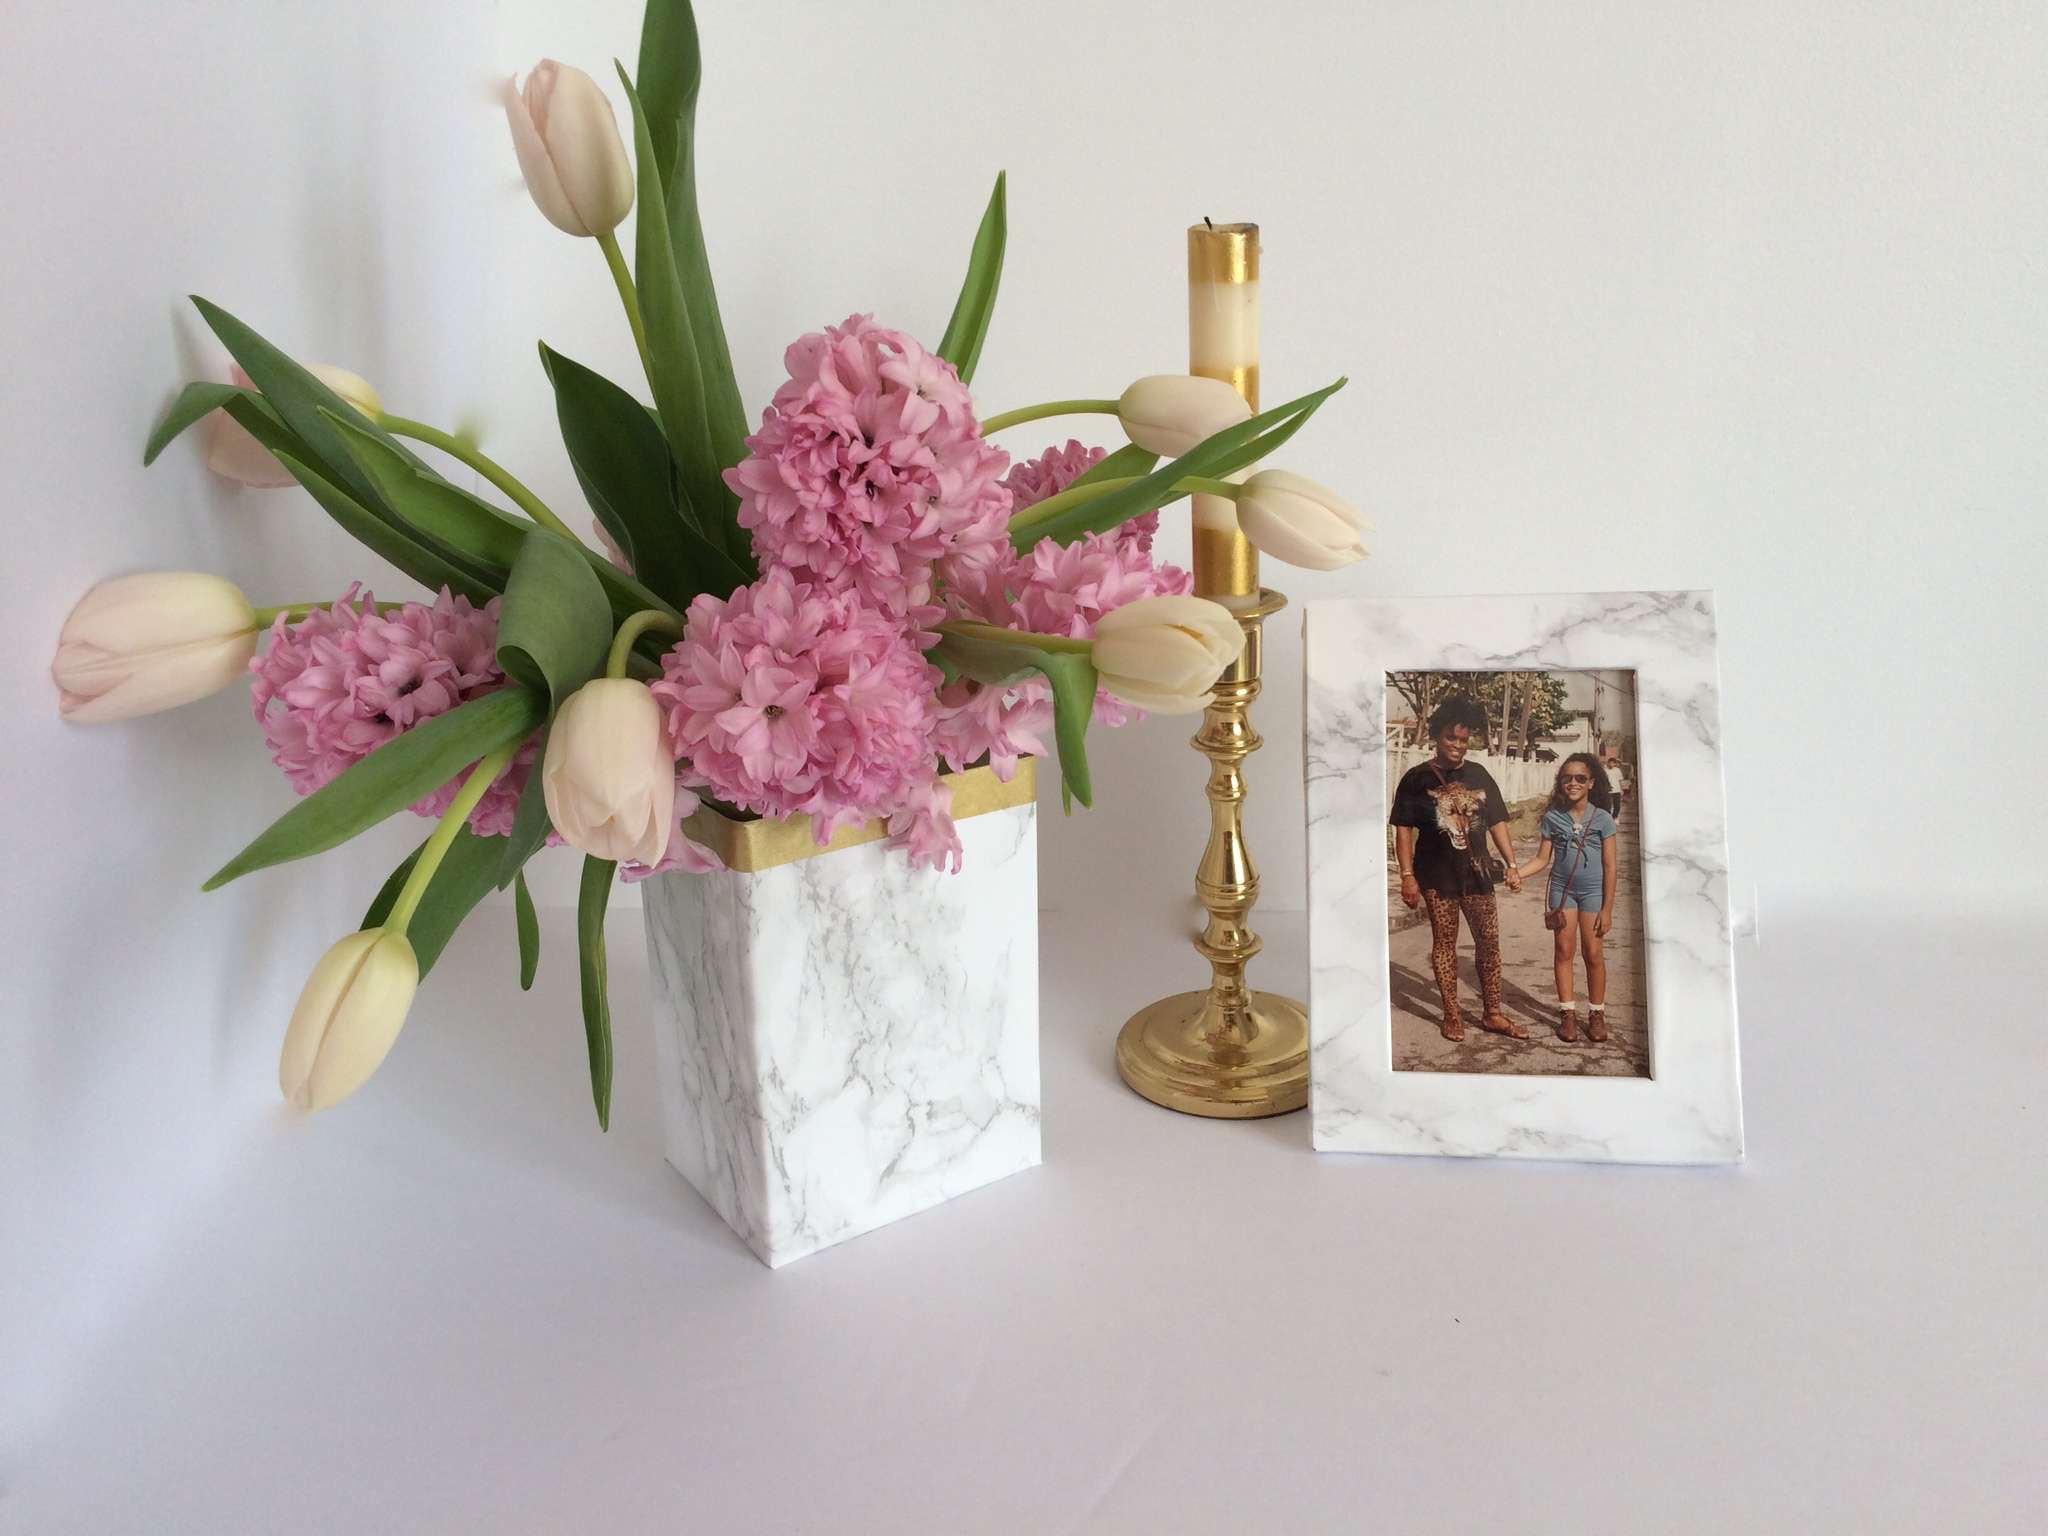 7 inch square vase of a gorgeous diy faux marble vase frame pertaining to 1 57164fbe3df78c3fa2afc31e jpg